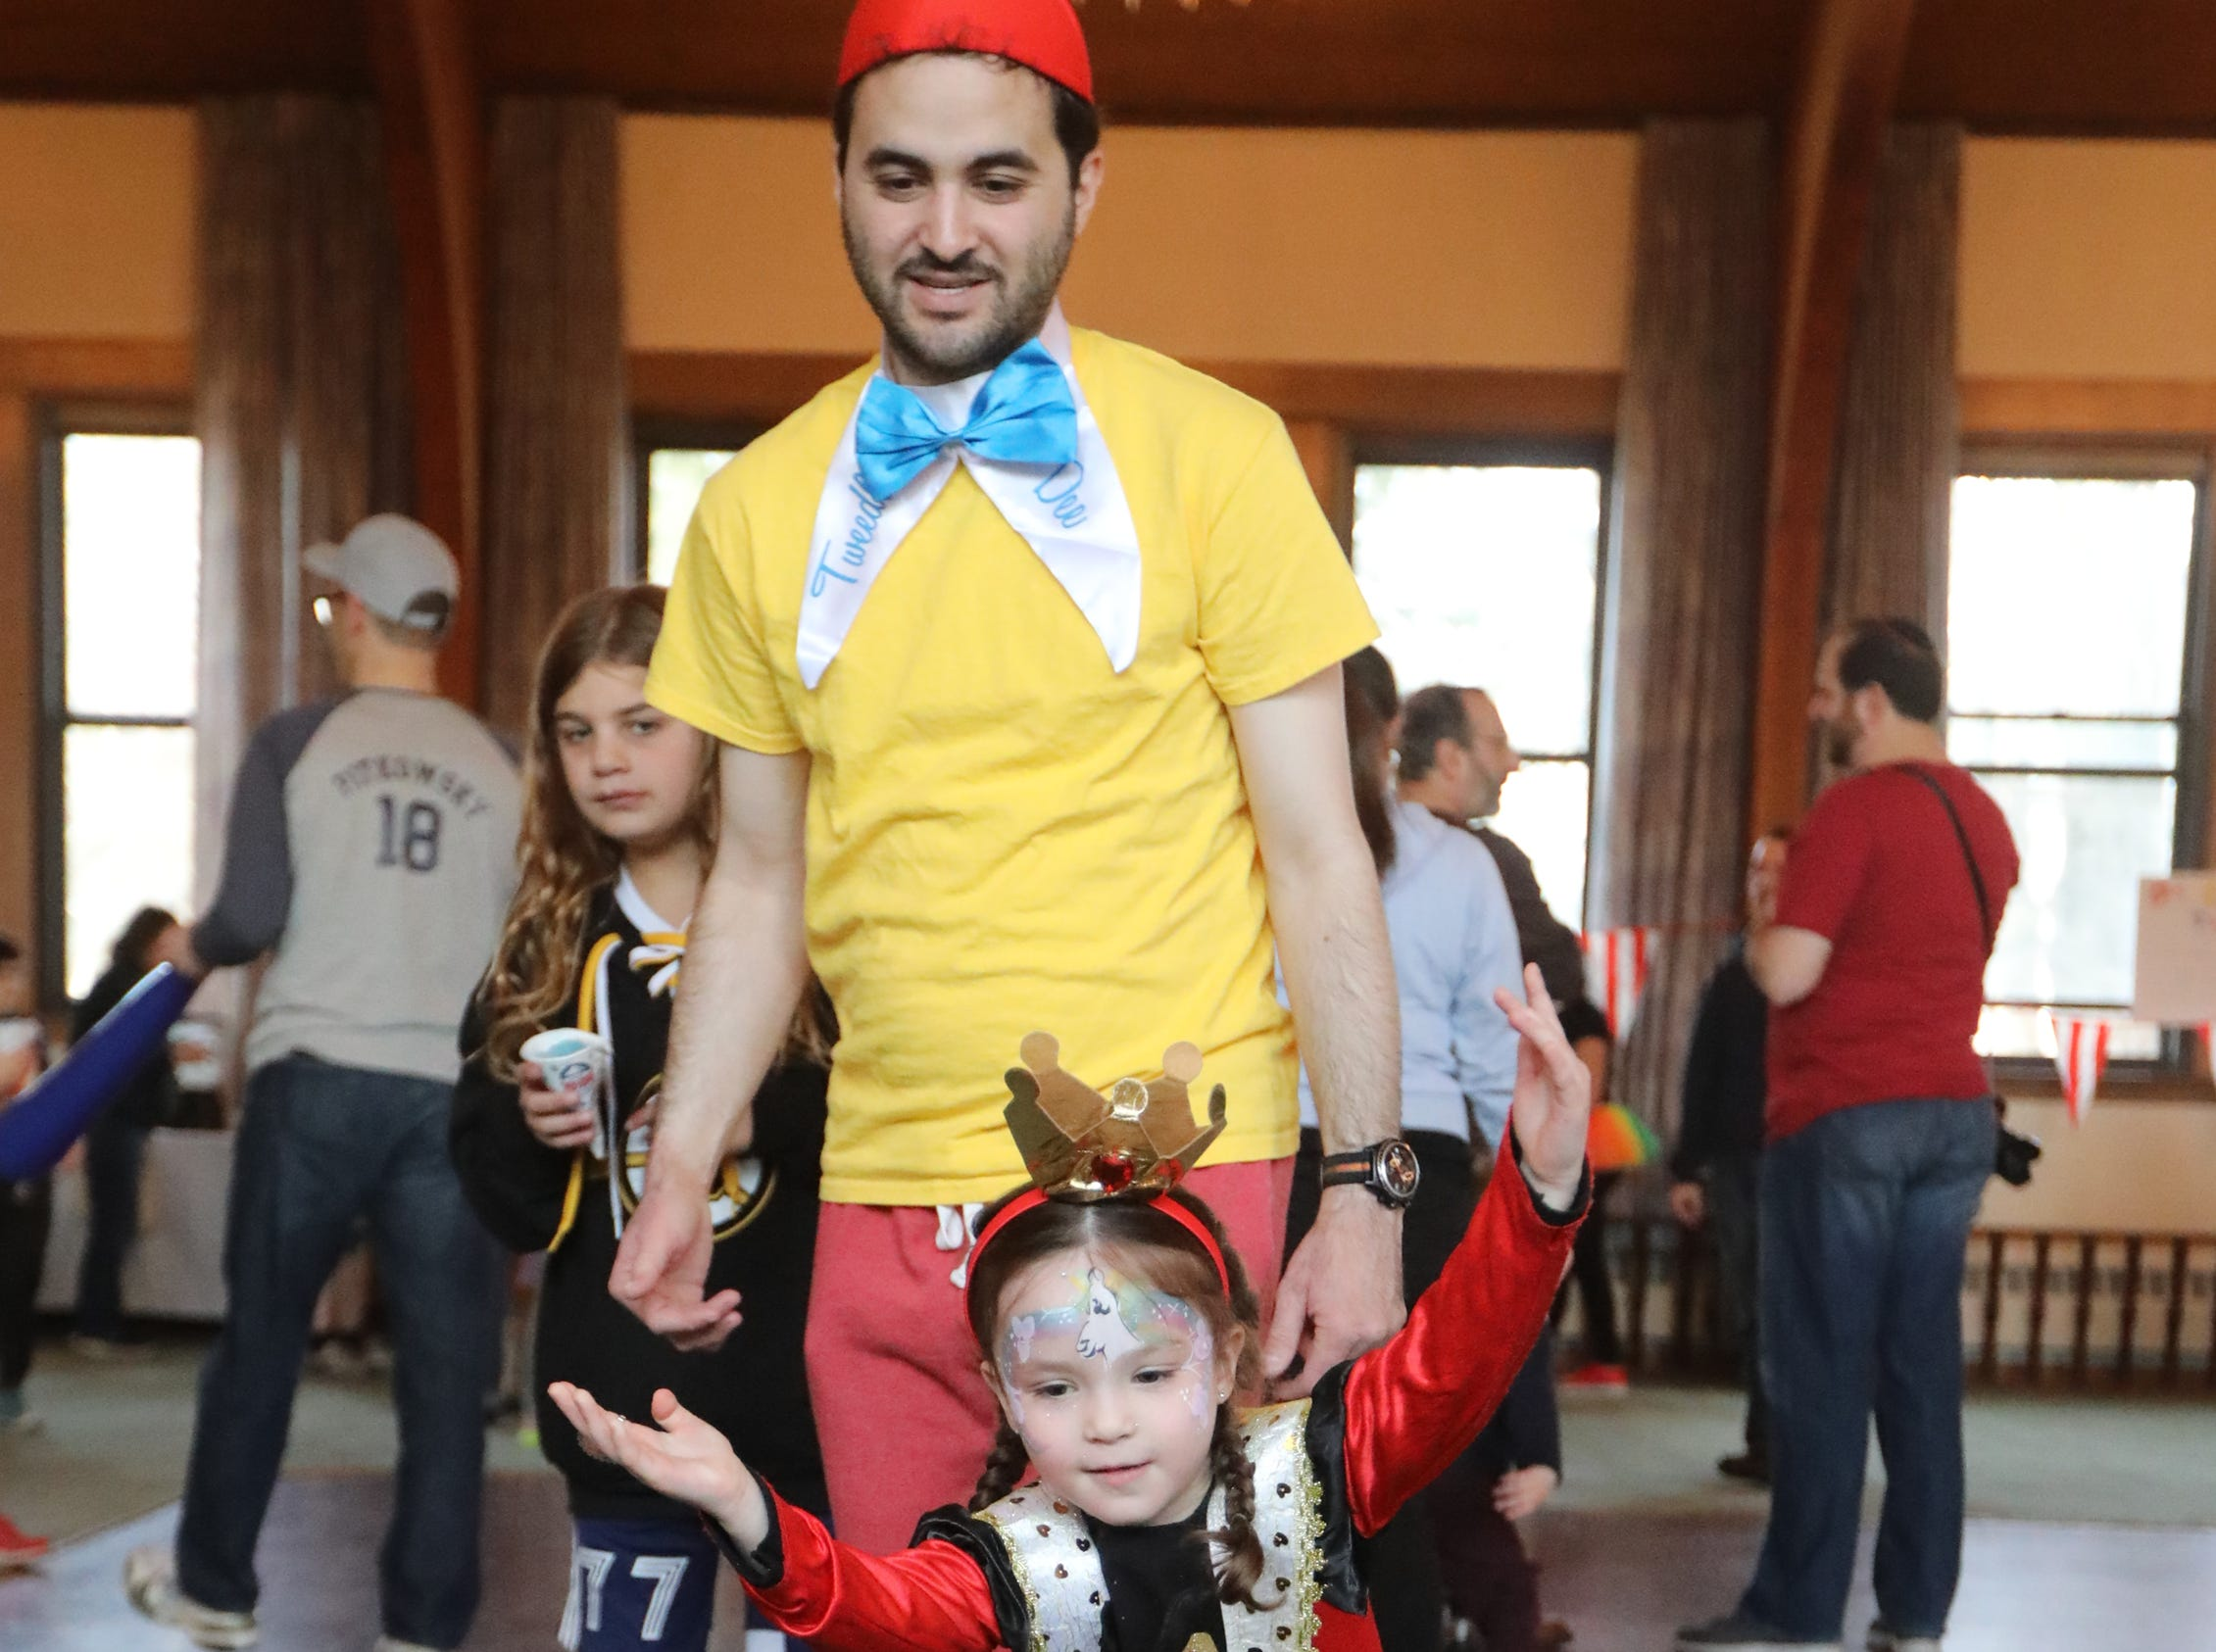 Zahava Danzig, 4, dressed as, Queen of Hearts, bowls in front of her father, Michael Danzig, who is dressed as Tweedledee, at the Beth Sholom Annual Purim Carnival, in Teaneck.  Sunday, March 24, 2019